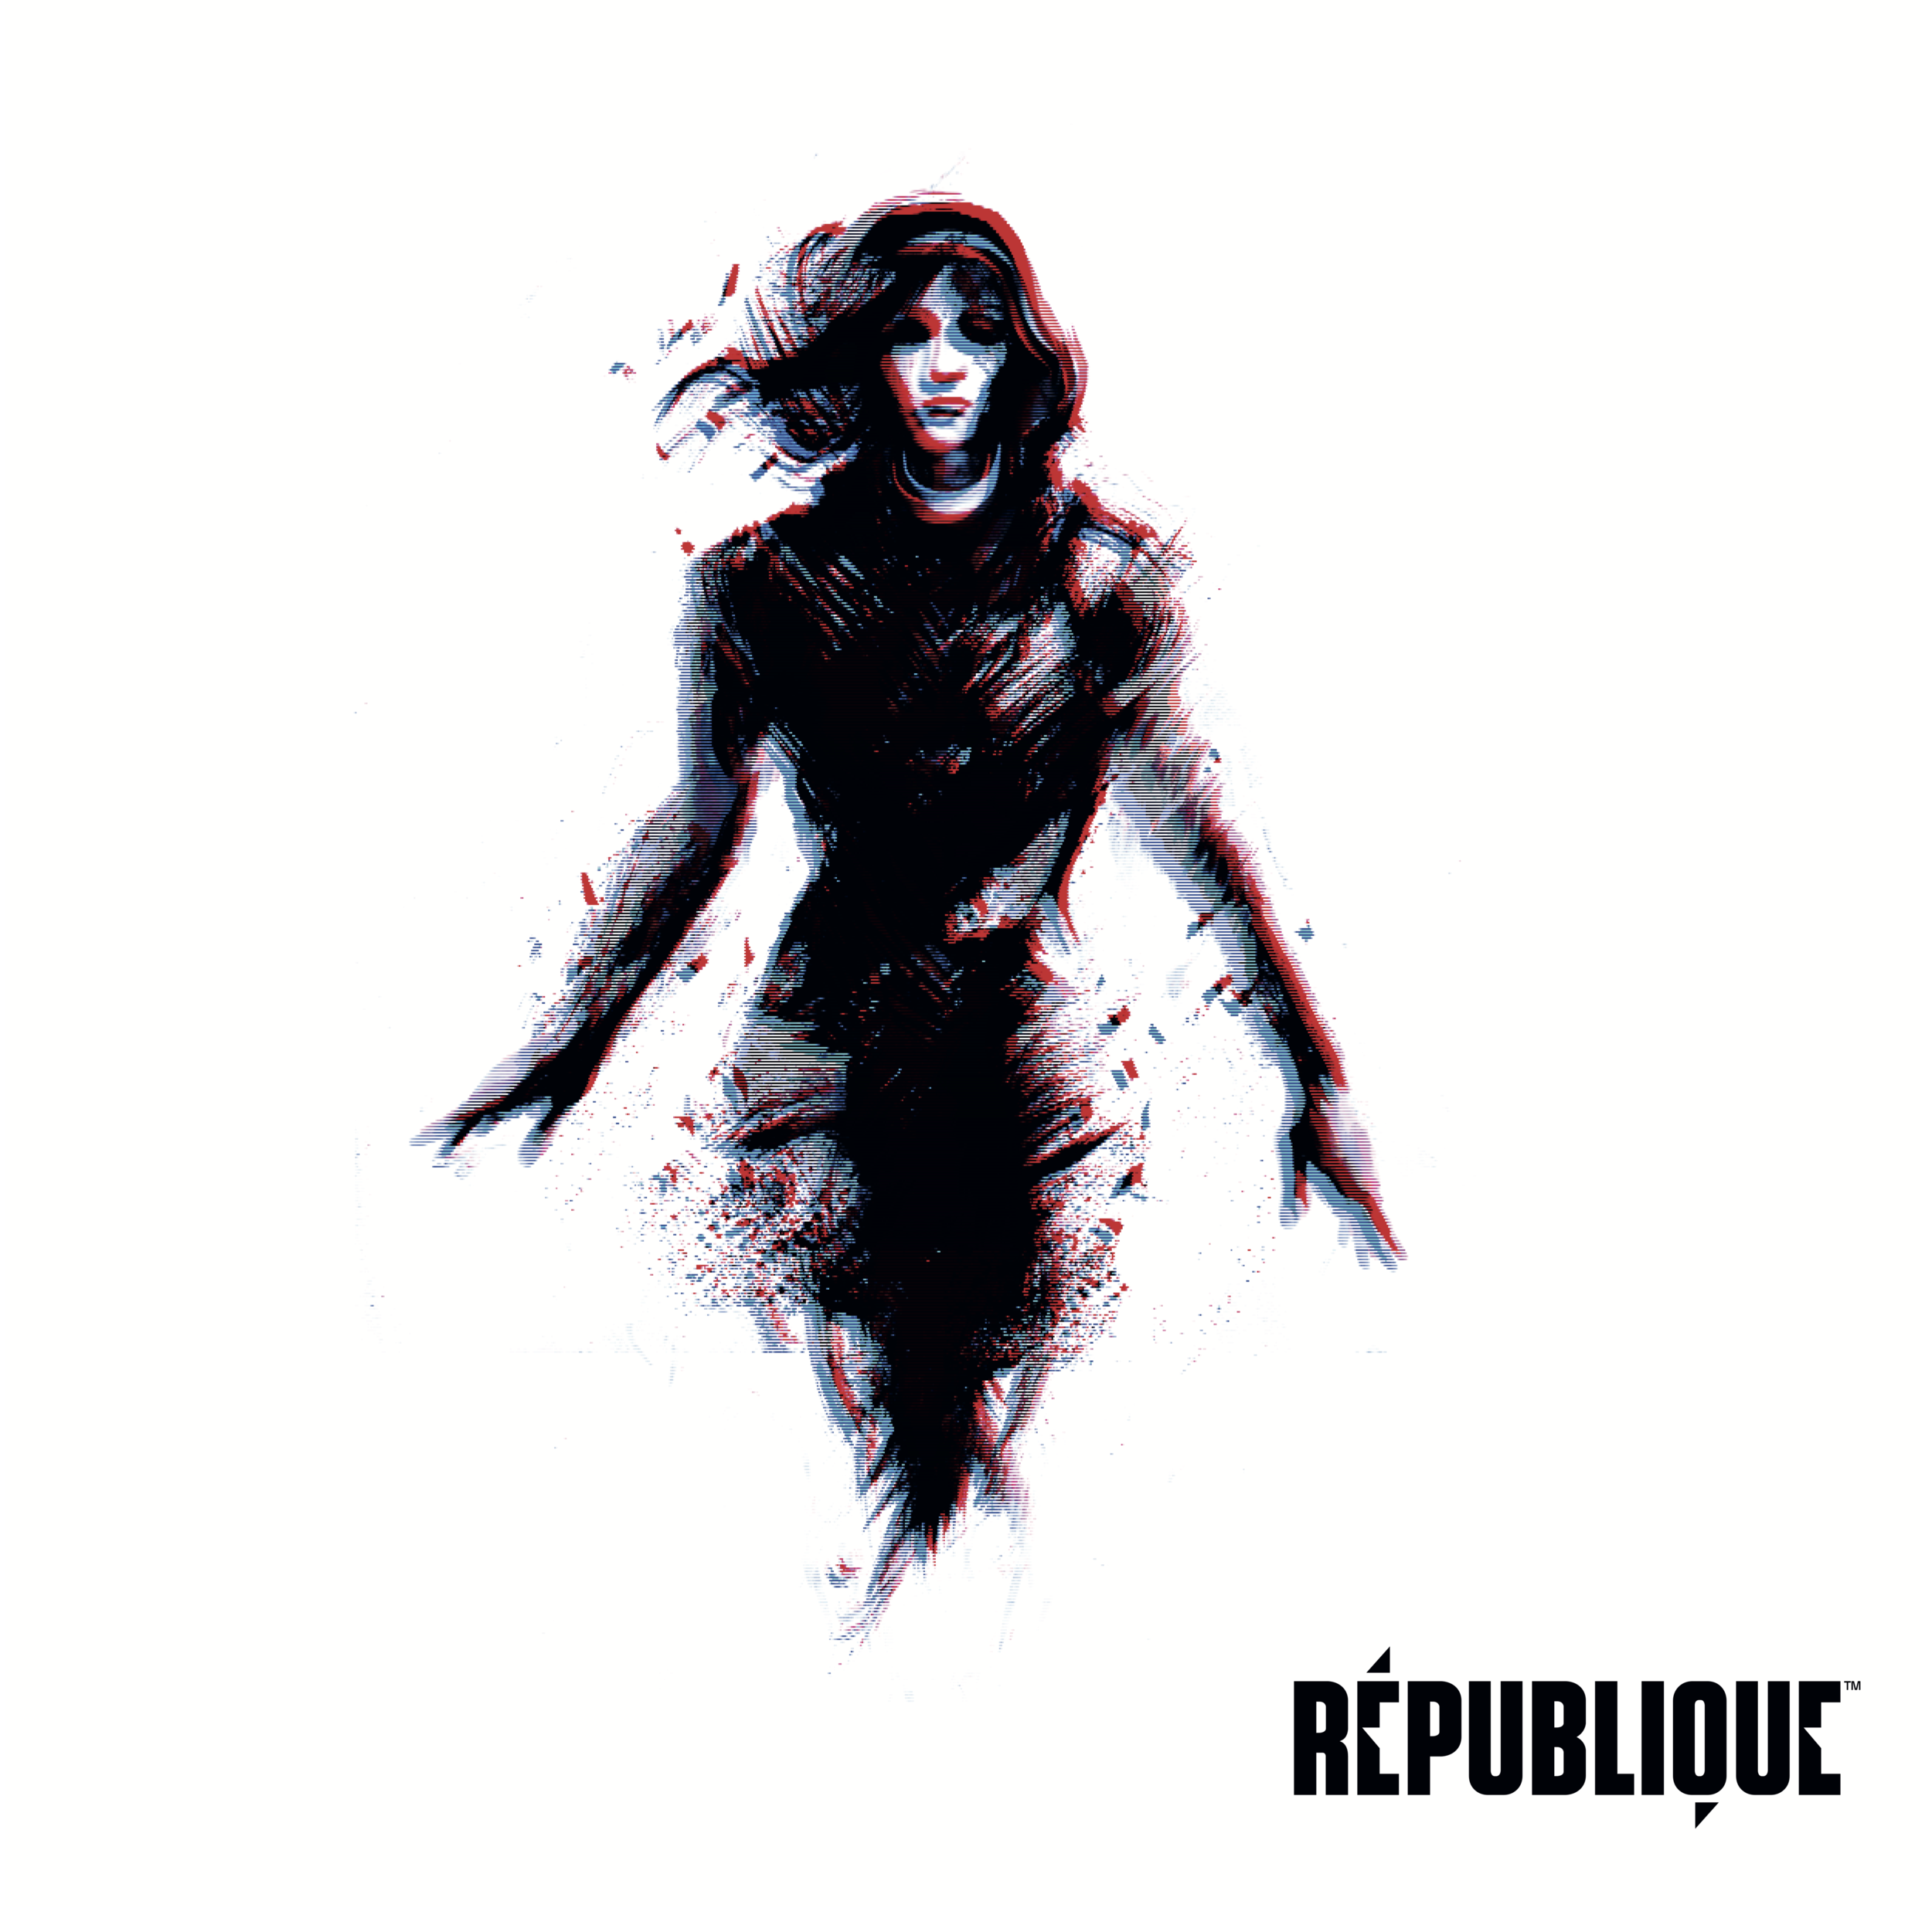 RÉPUBLIQUE Anniversary Edition CD: $10 / LP: $25